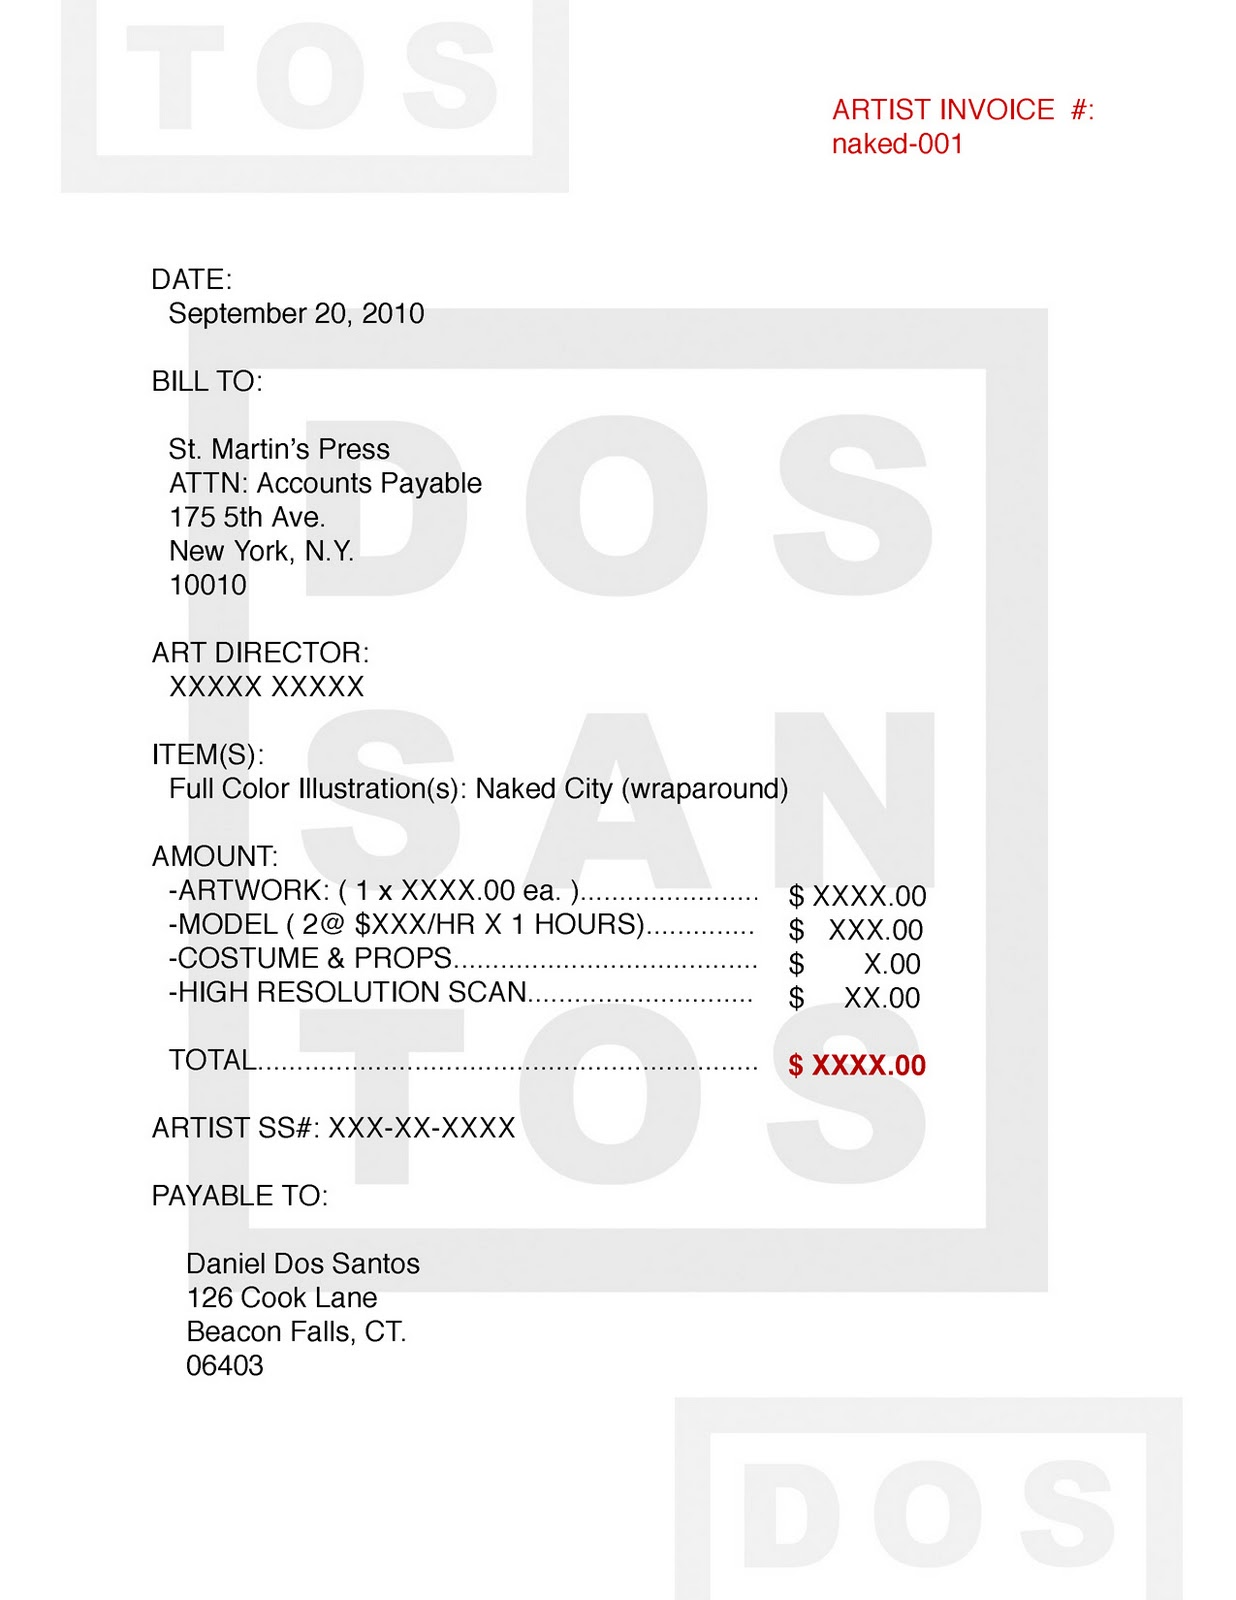 Centralasianshepherdus  Marvellous Muddy Colors Invoices With Hot I Believe That This Format Contains All The Pertinent Information That A Good Invoice Should Have And Can Serve As A Decent Template For Your Own With Nice Tax Invoice Layout Also Download Free Invoice Software In Addition Invoice Requirements Australia And Invoice Pricing New Cars As Well As Invoice Template Uk Excel Additionally Download Free Invoice From Muddycolorsblogspotcom With Centralasianshepherdus  Hot Muddy Colors Invoices With Nice I Believe That This Format Contains All The Pertinent Information That A Good Invoice Should Have And Can Serve As A Decent Template For Your Own And Marvellous Tax Invoice Layout Also Download Free Invoice Software In Addition Invoice Requirements Australia From Muddycolorsblogspotcom